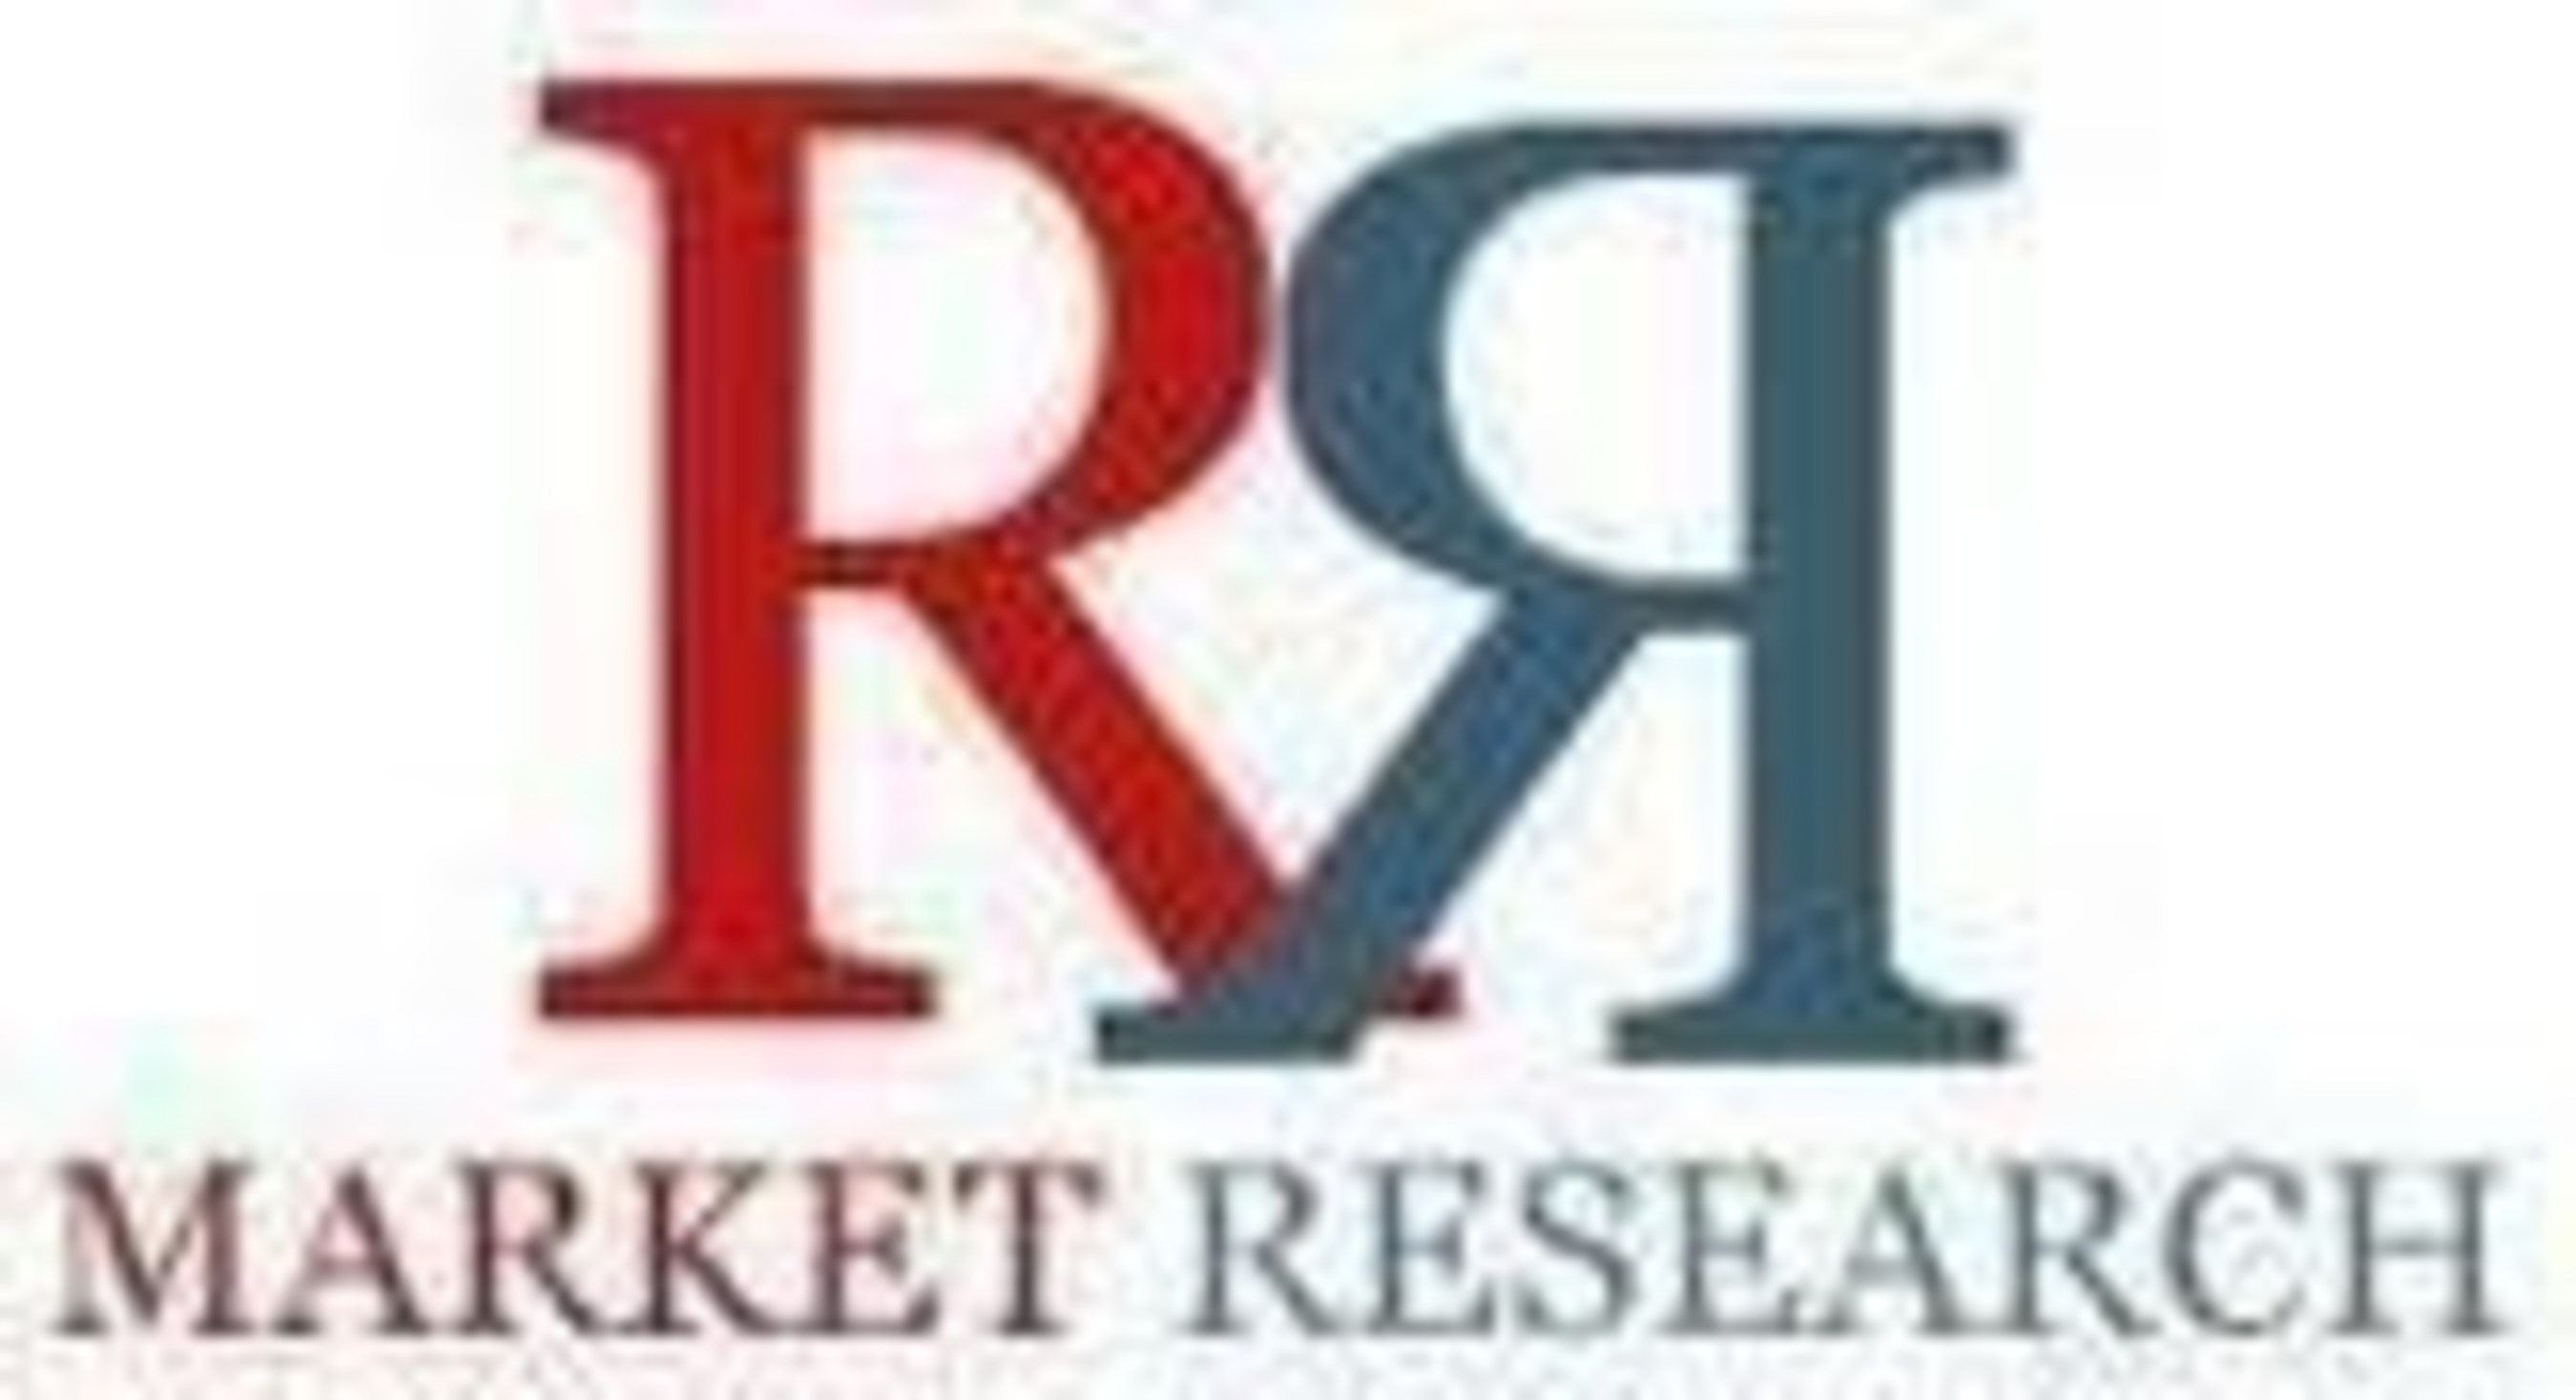 28%+ CAGR - Directed Energy Weapons Market Growth Potentially Worth 24.45 Billion USD by 2021 Dominated by North America